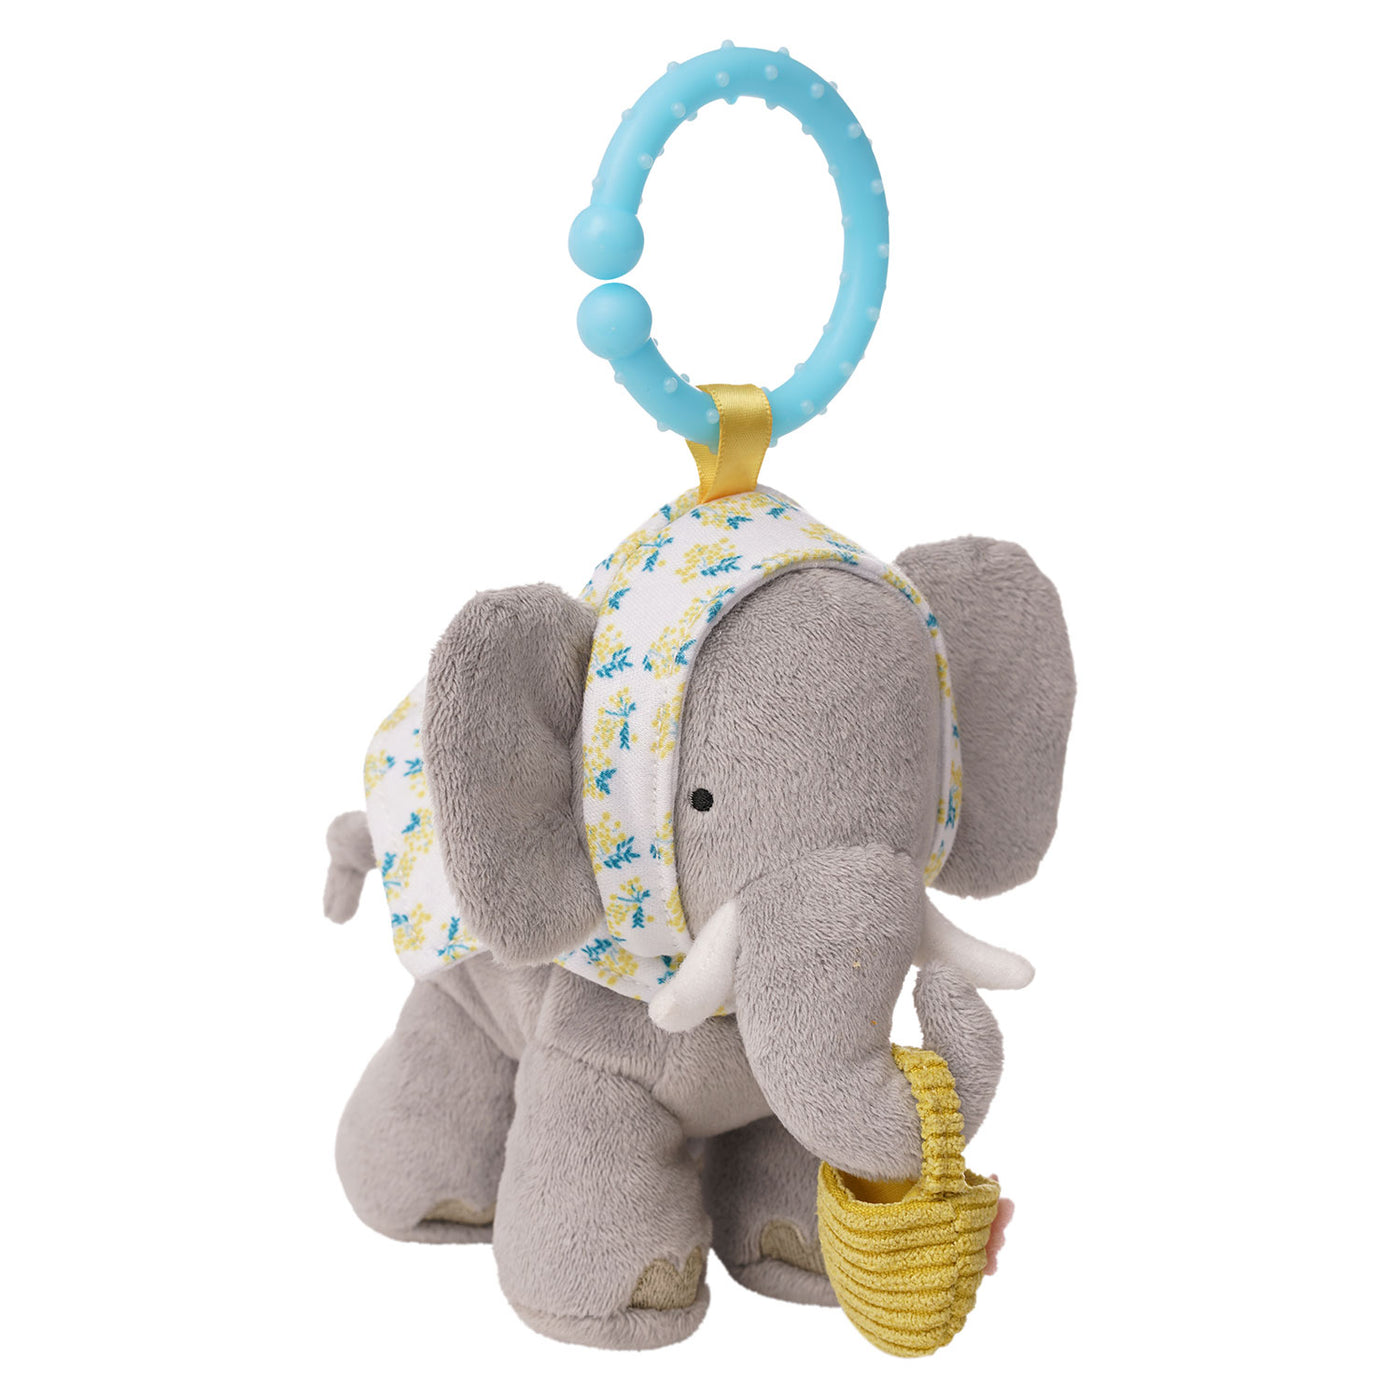 Fairytale Elephant